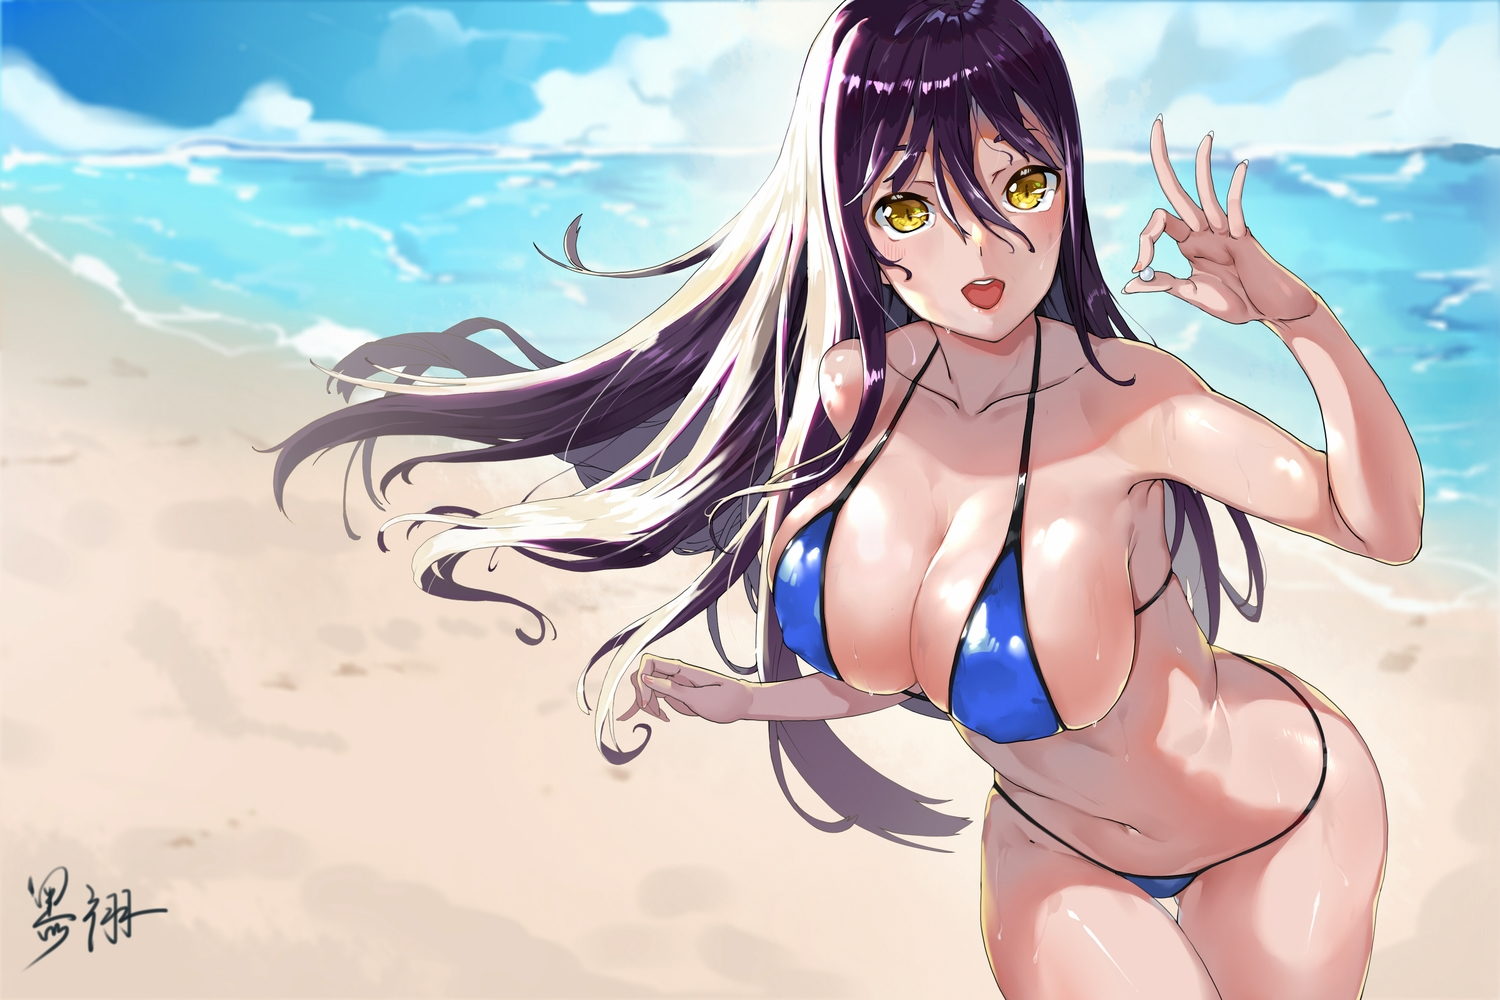 beach bikini clouds erect_nipples heiyu long_hair navel original purple_hair signed sky swimsuit water wet yellow_eyes